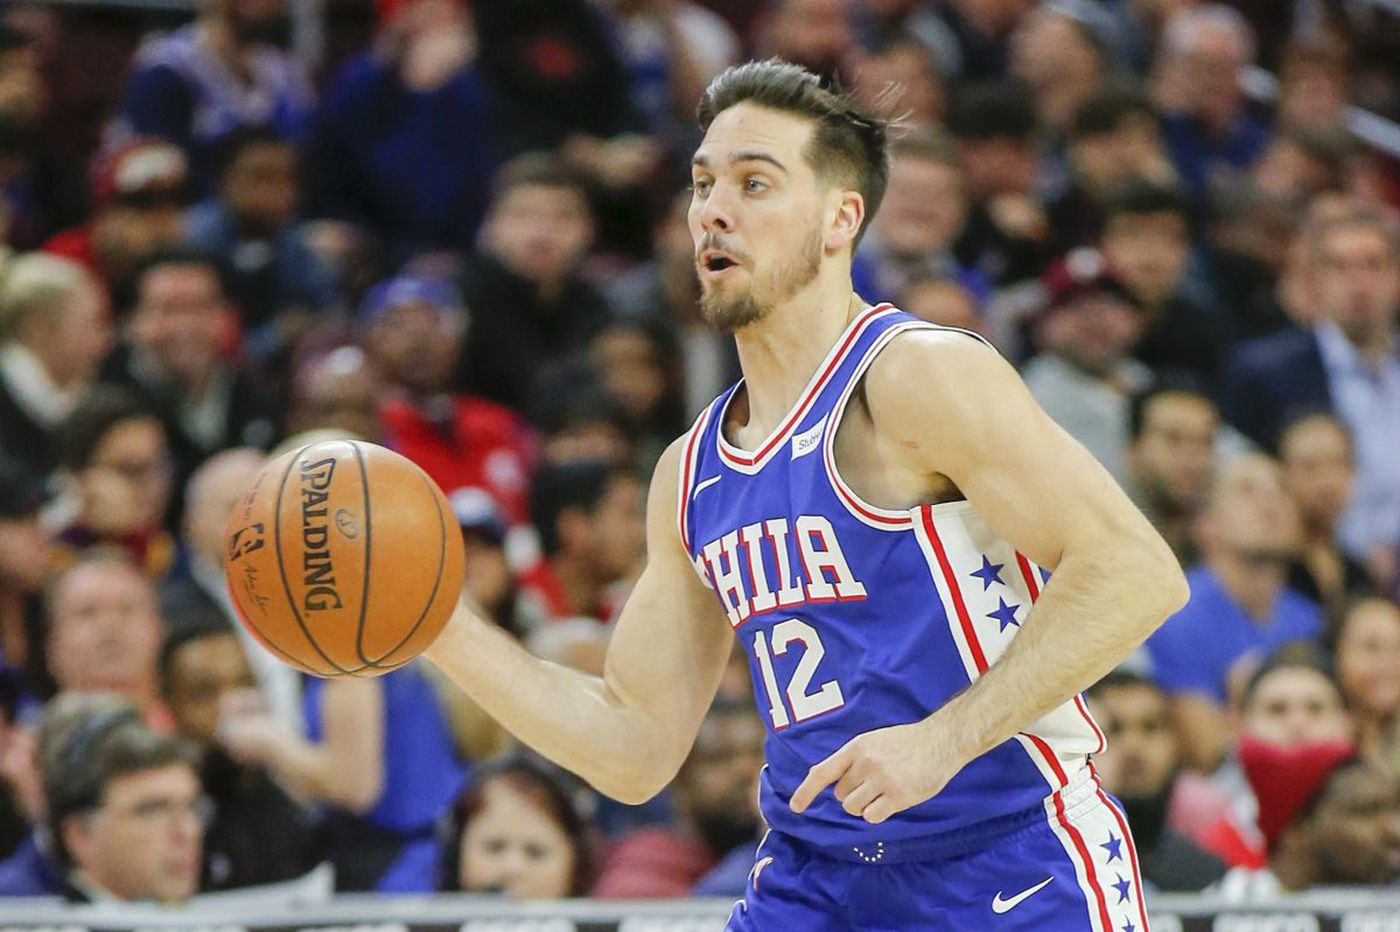 Sixers' T.J. McConnell to miss Bulls game to attend father-in-law's funeral